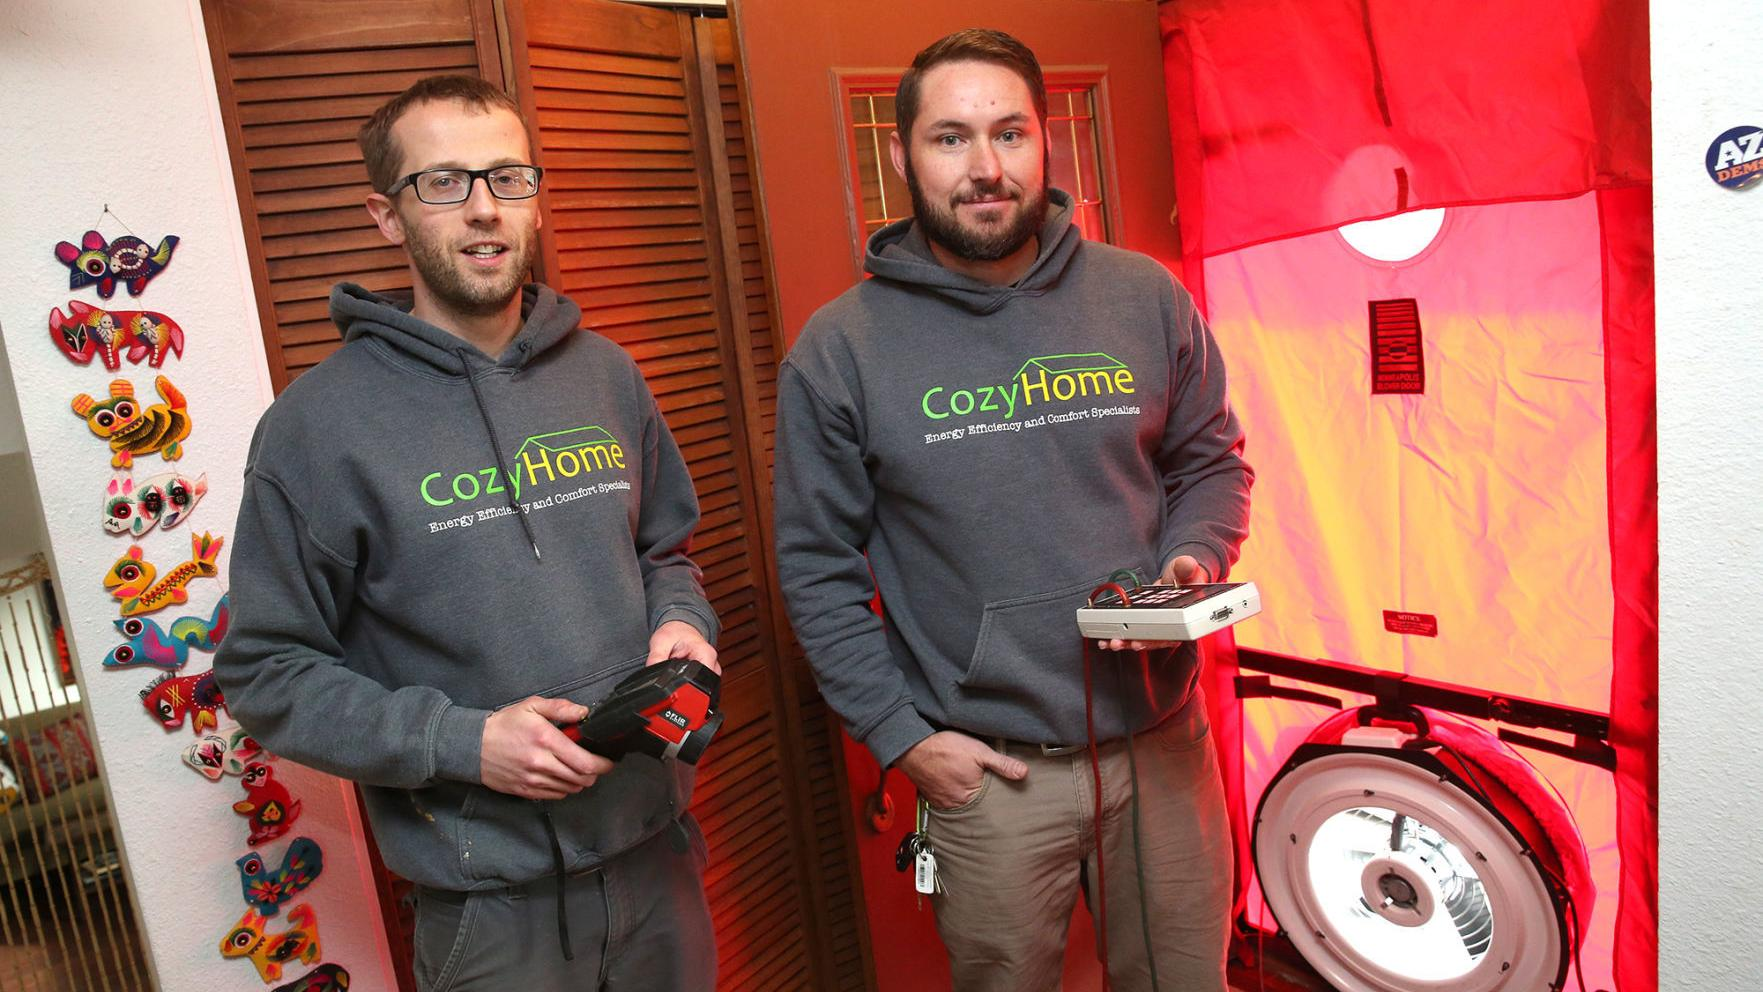 Outfitting Flagstaff homes: Sustainability Program working to cut energy costs, waste within city